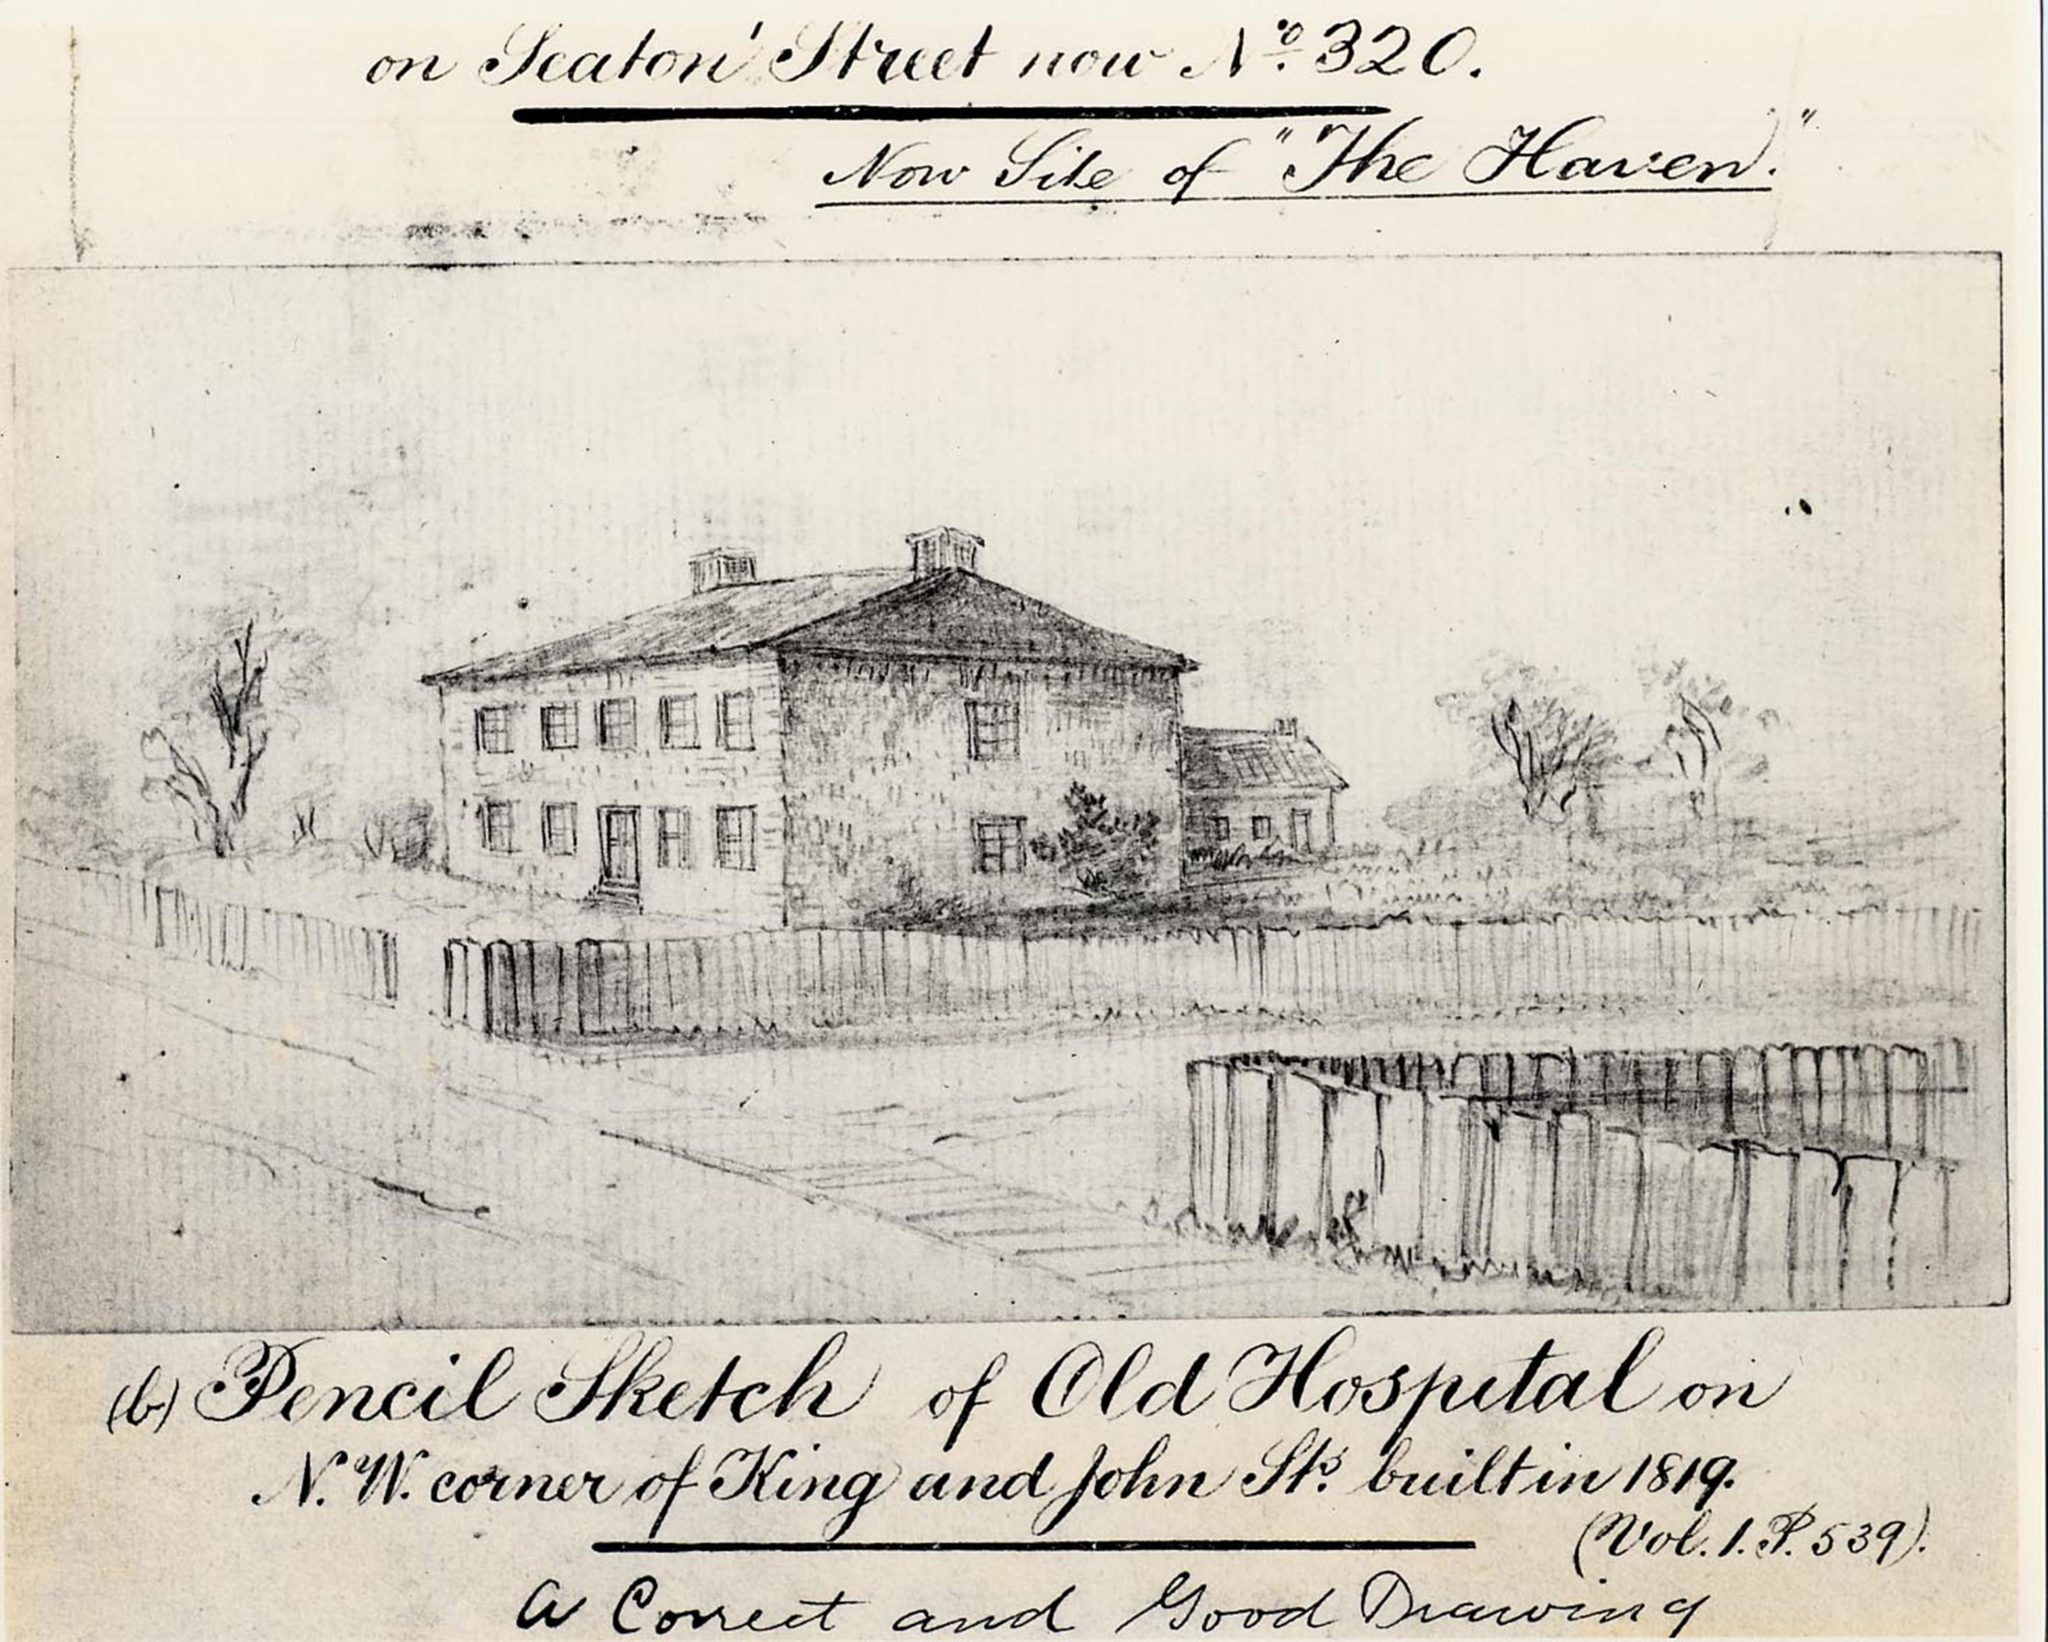 """""""Pencil Sketch of Old Hospital on N.W. corner of King and John Sts. built in 1819. A Correct and Good Drawing."""""""